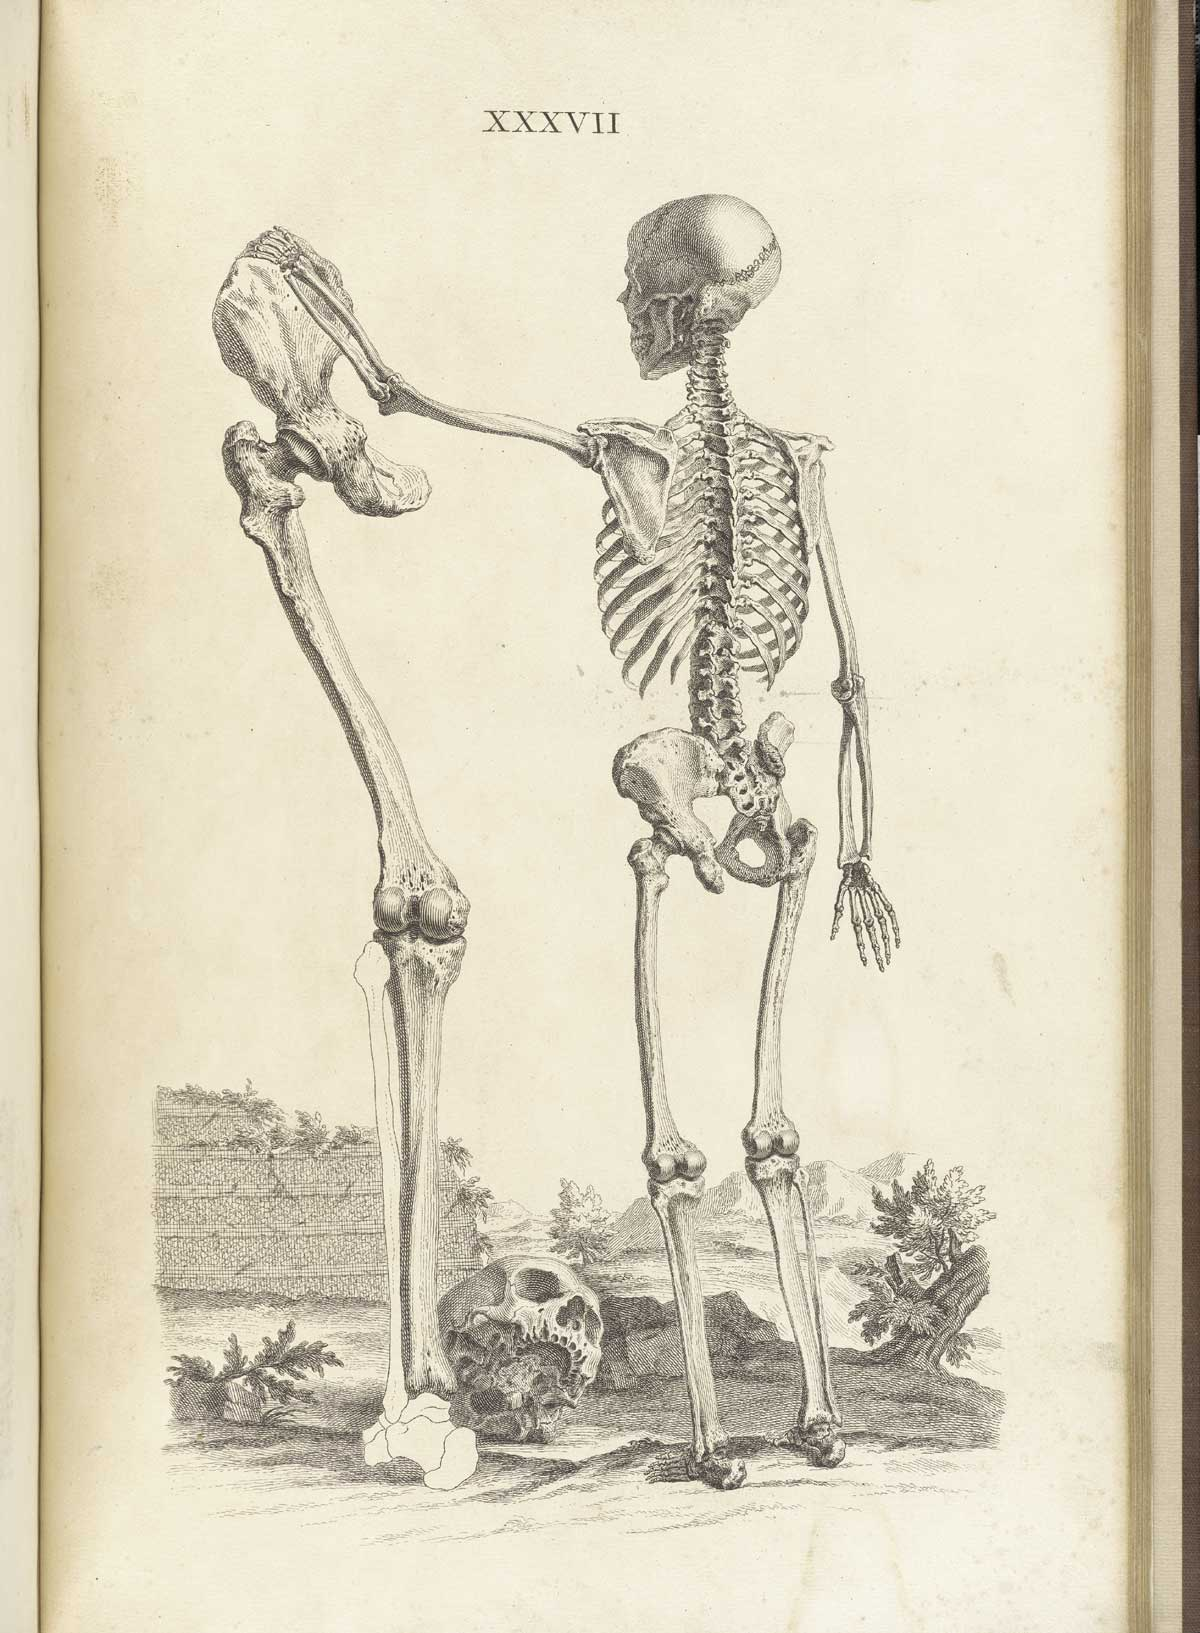 Historical Anatomies On The Web William Cheselden Home Chicken Leg Dissection Diagram For Pinterest Engraving Of Standing Skeleton Facing Away From Viewer In A Pastoral Setting With Its Right